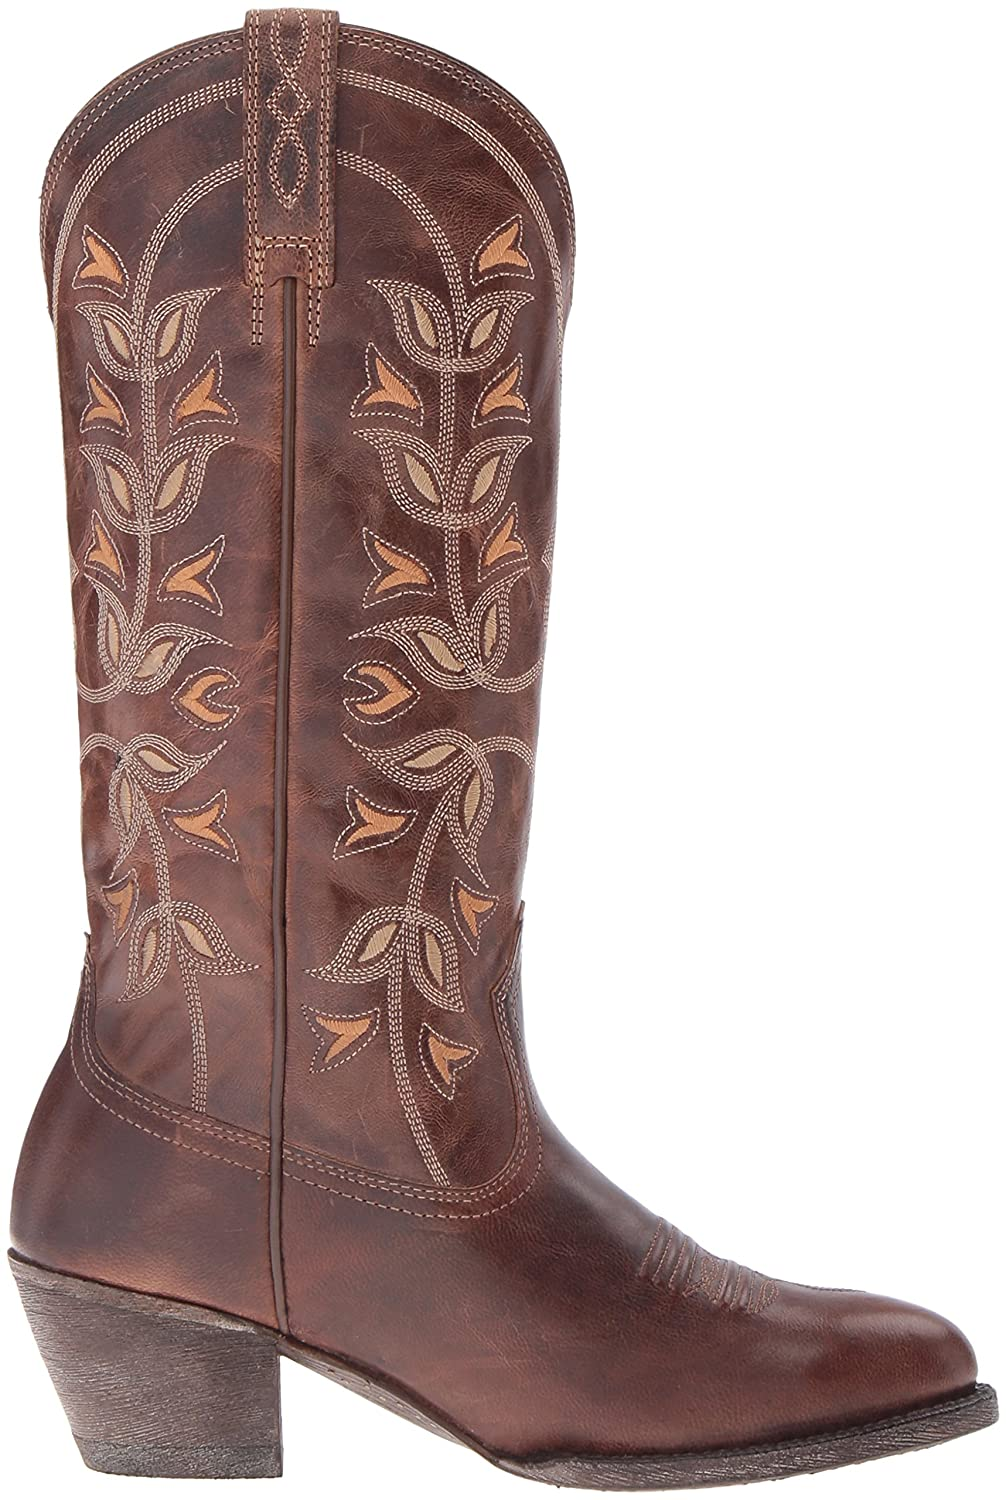 Ariat Women's B00IM7DI20 Desert Holly Western Cowboy Boot B00IM7DI20 Women's 7 B(M) US|Pearl 107e7d